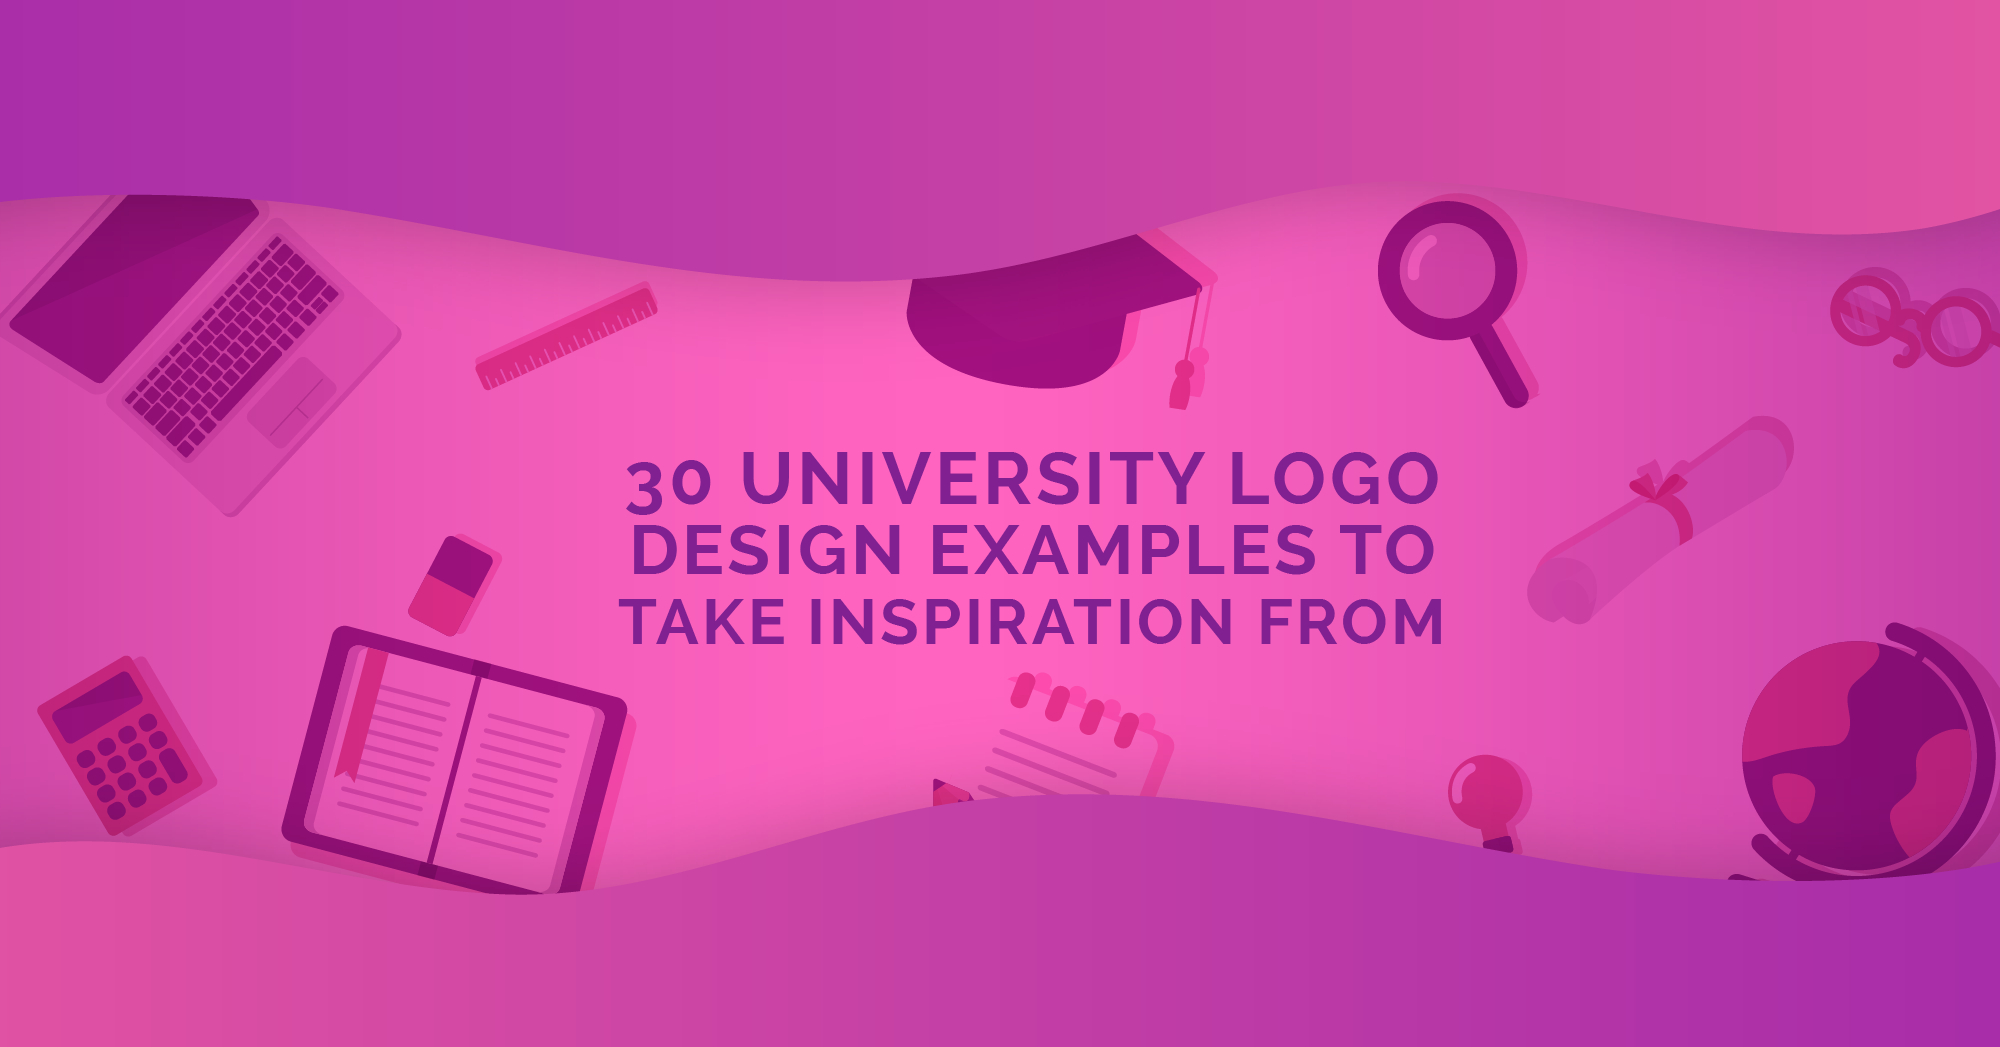 30 University Logo Design Examples to Take Inspiration From